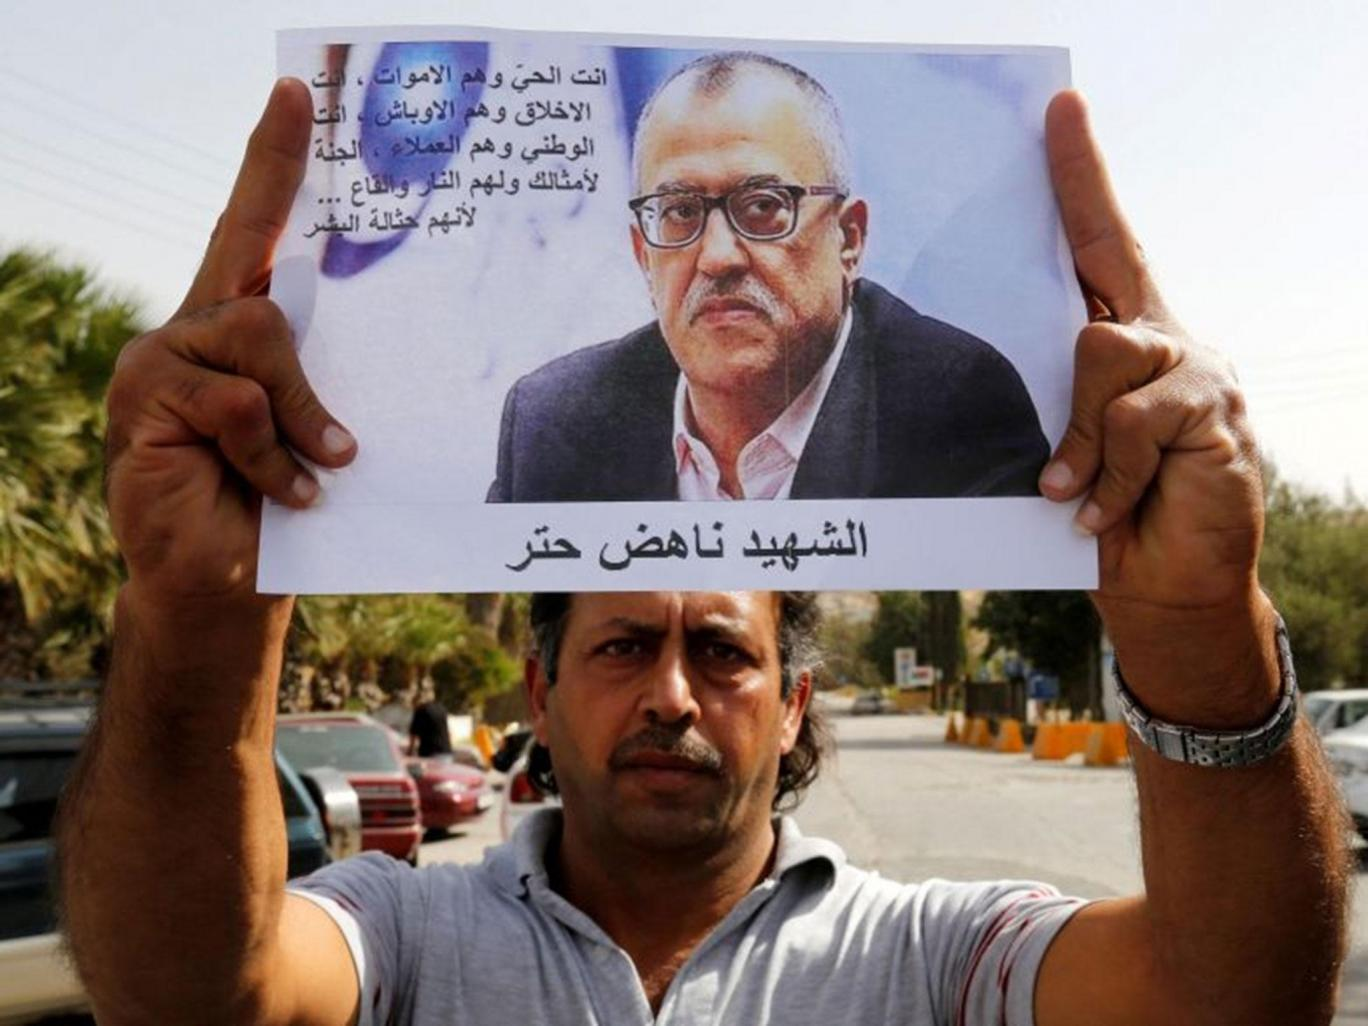 A relative of Jordanian writer Nahed Hattar holds his picture during a sit-in in the town of Al-Fuheis near Amman, Jordan, 25 September, 2016 Reuters